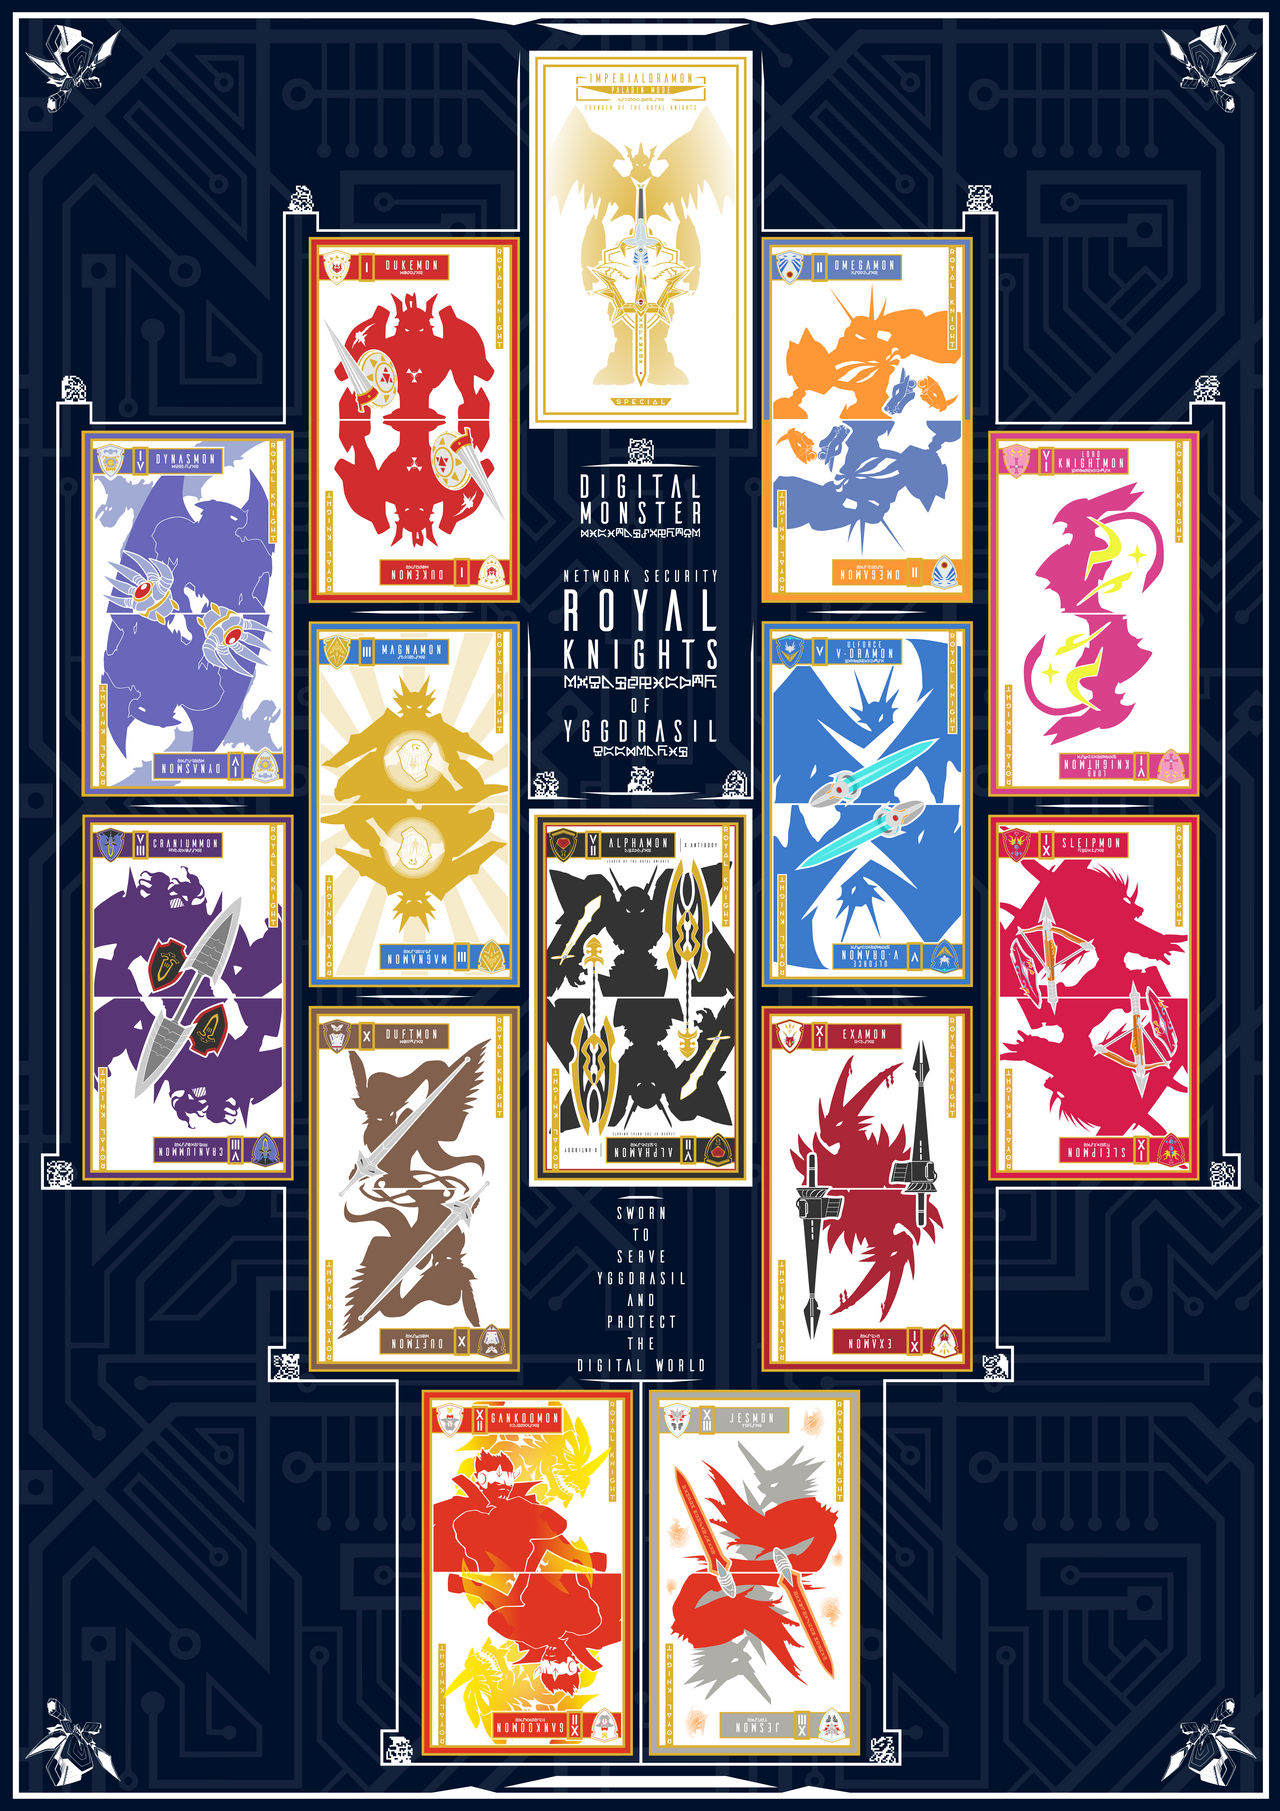 Knights Of Yggdrasil Royal Knights Card Set 1 By Pliskinpt On Deviantart If dracomon is the common ancestor of all dragon digimon, examon stands above them all as the dragon emperor. royal knights card set 1